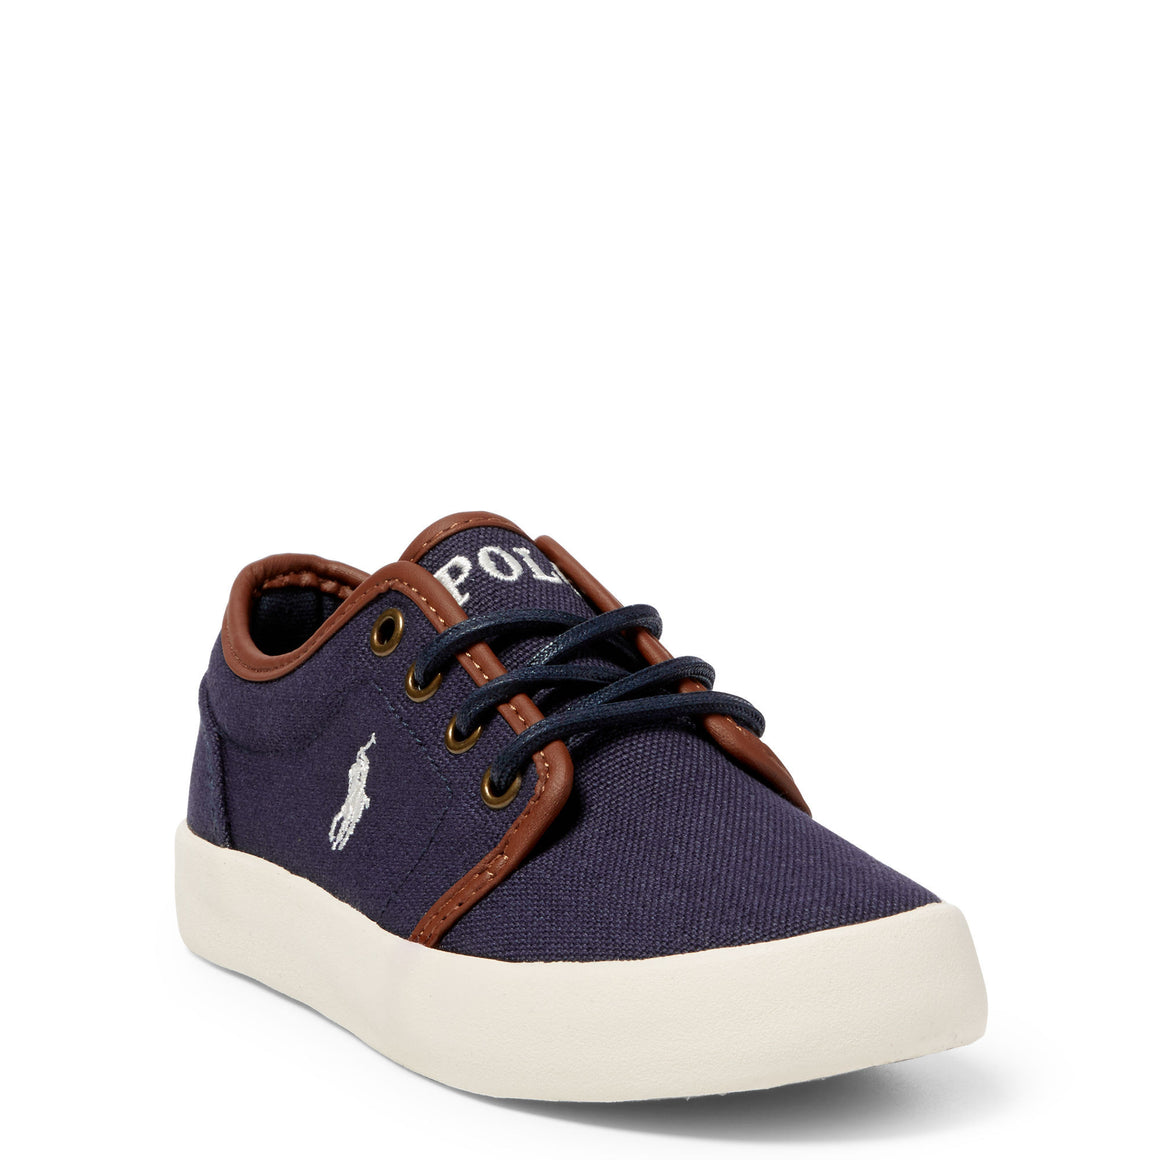 Polo Boy's Ethan Low Canvas Sneaker - Navy 990549C